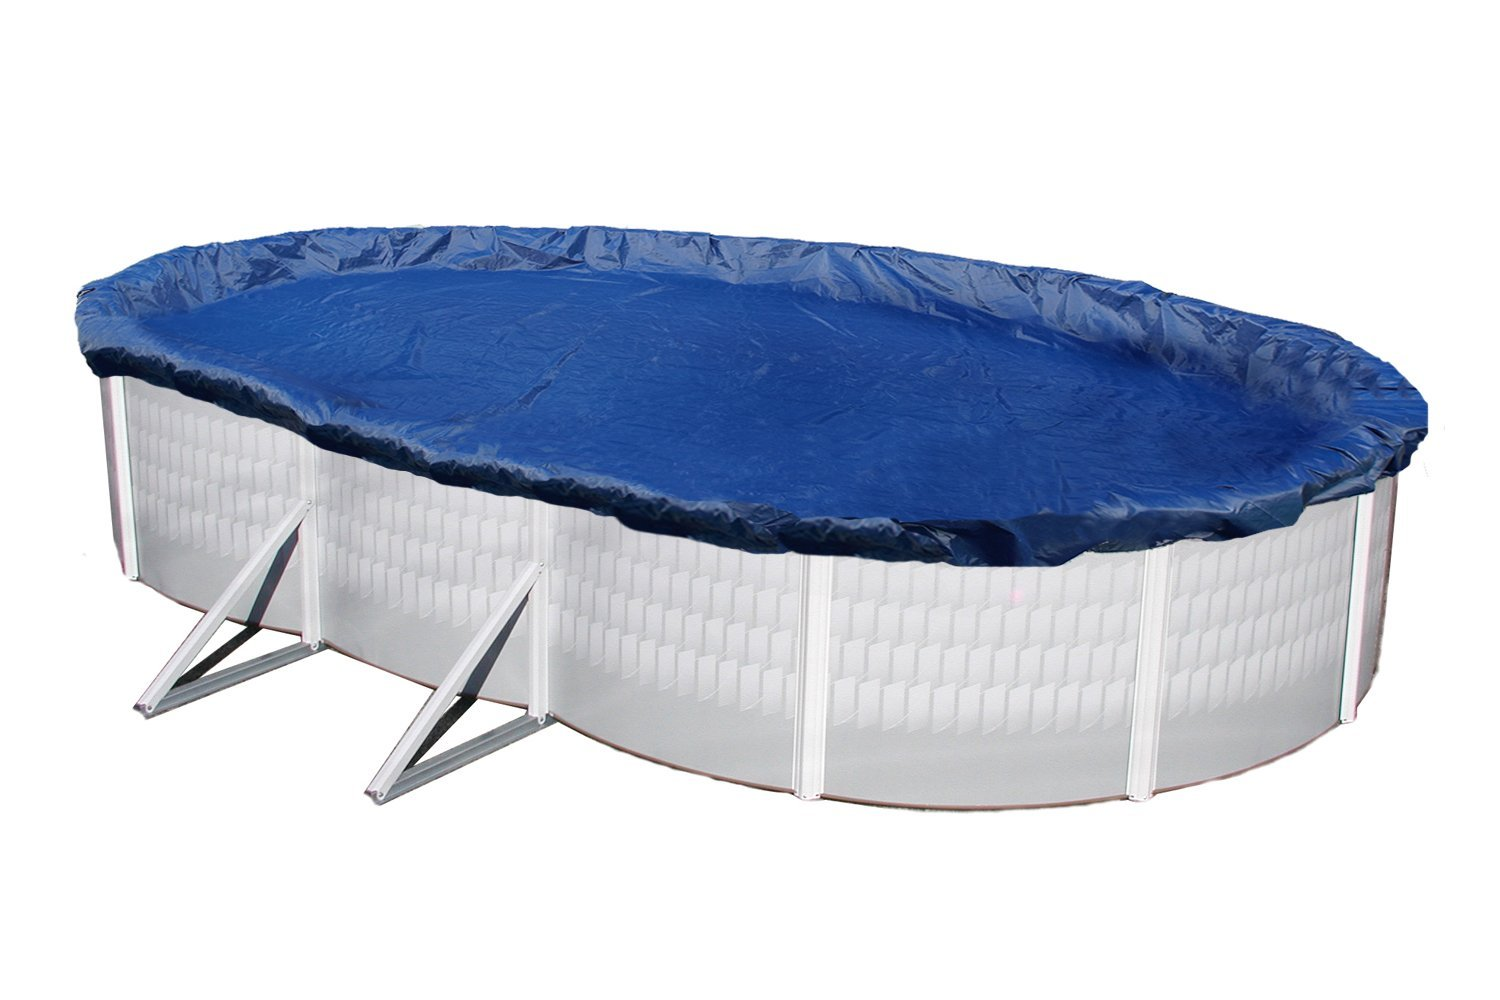 Winter pool cover above ground 16x28 ft oval arctic armor for Above ground pool winter cover ideas